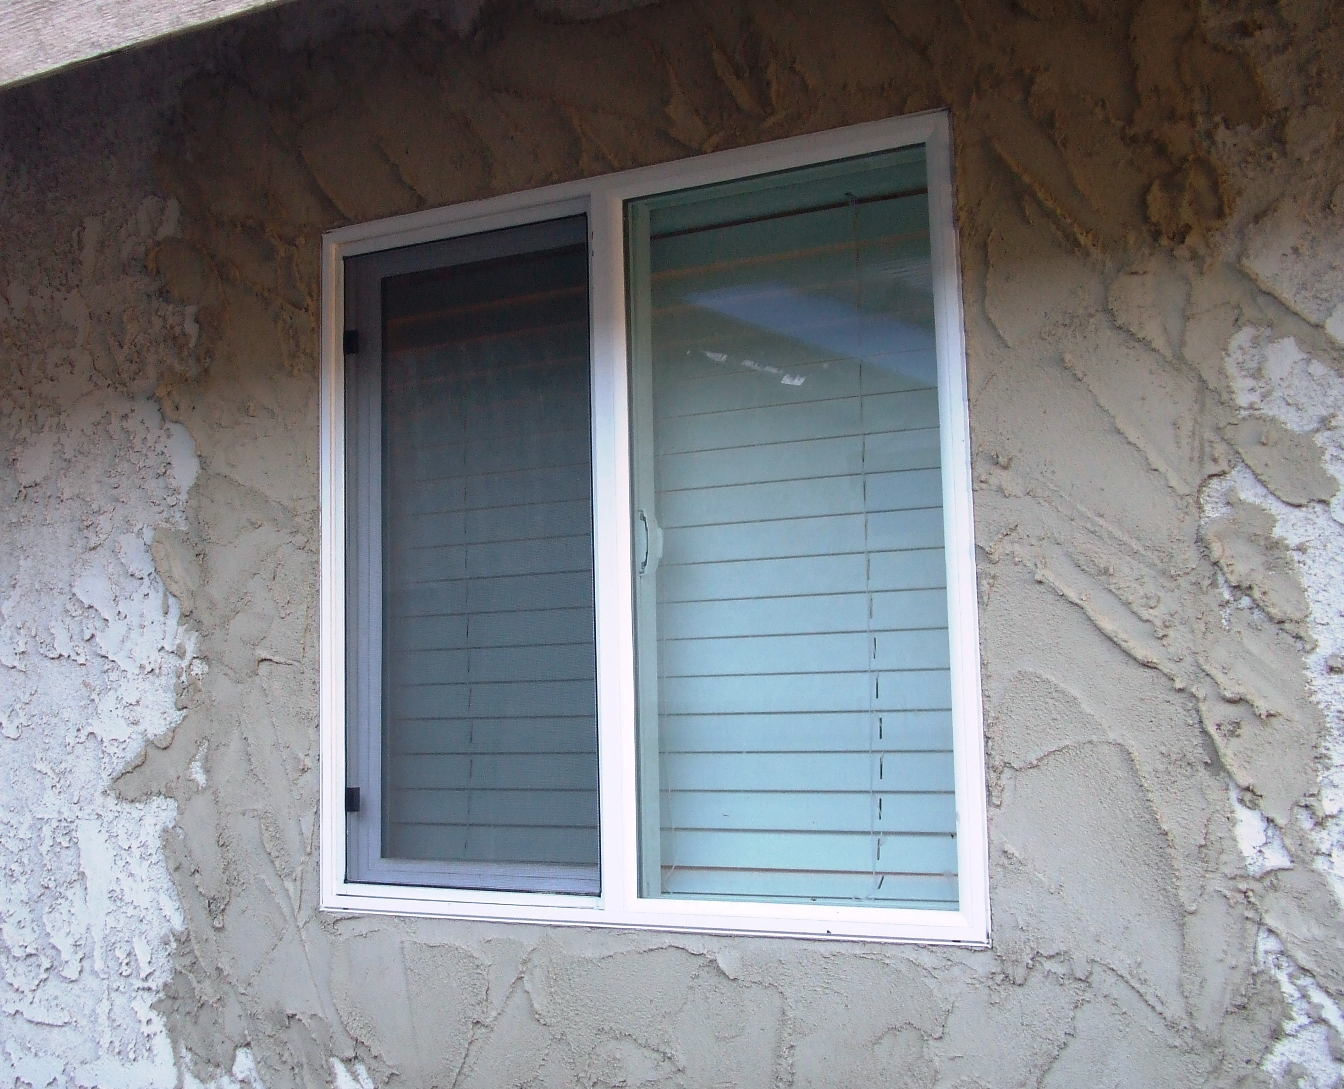 How to install a handicap accessible window How to replace an exterior window